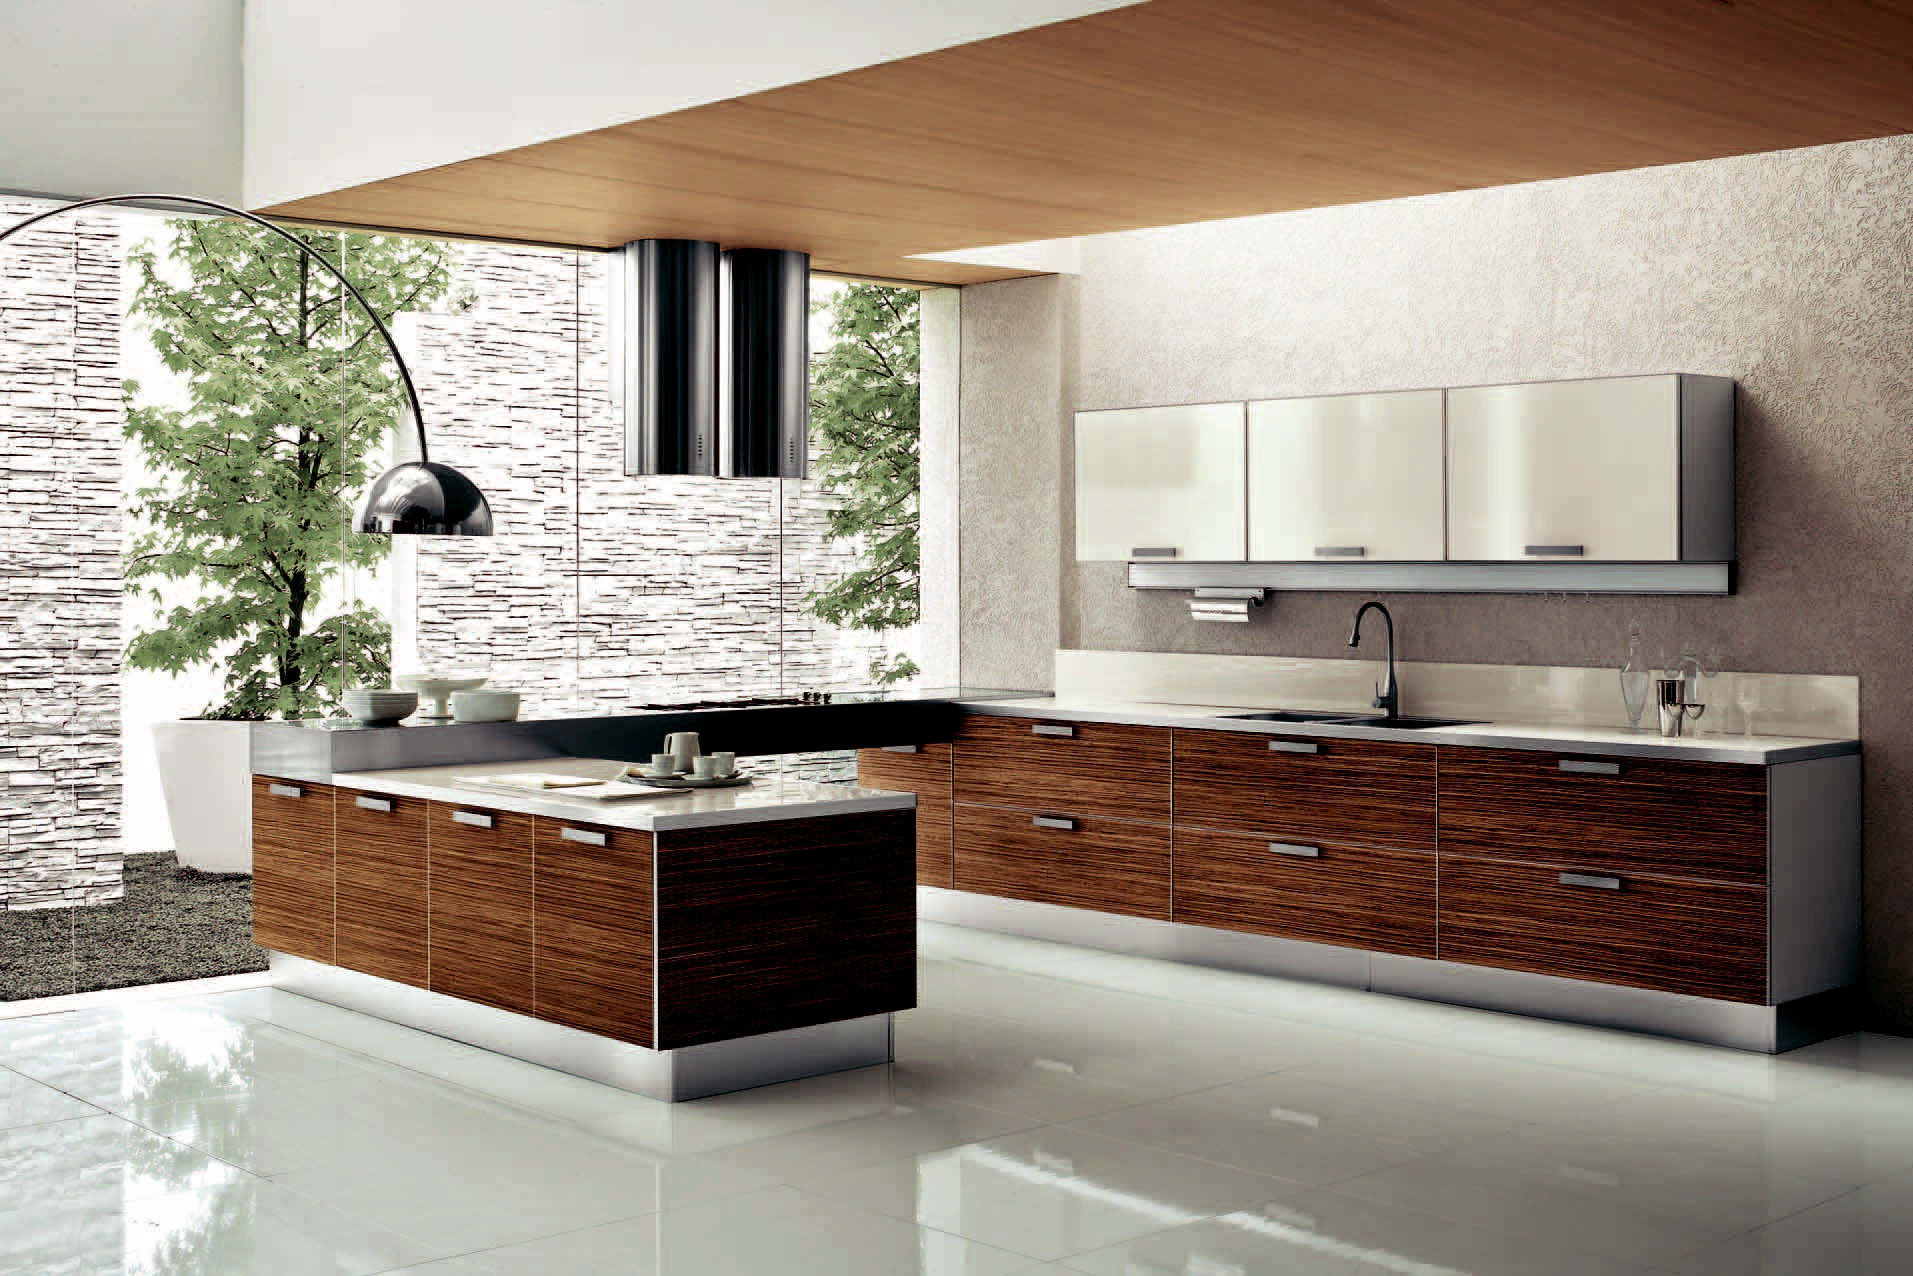 Beyond kitchens kitchen cupboards cape town kitchens for Modern kitchen remodel